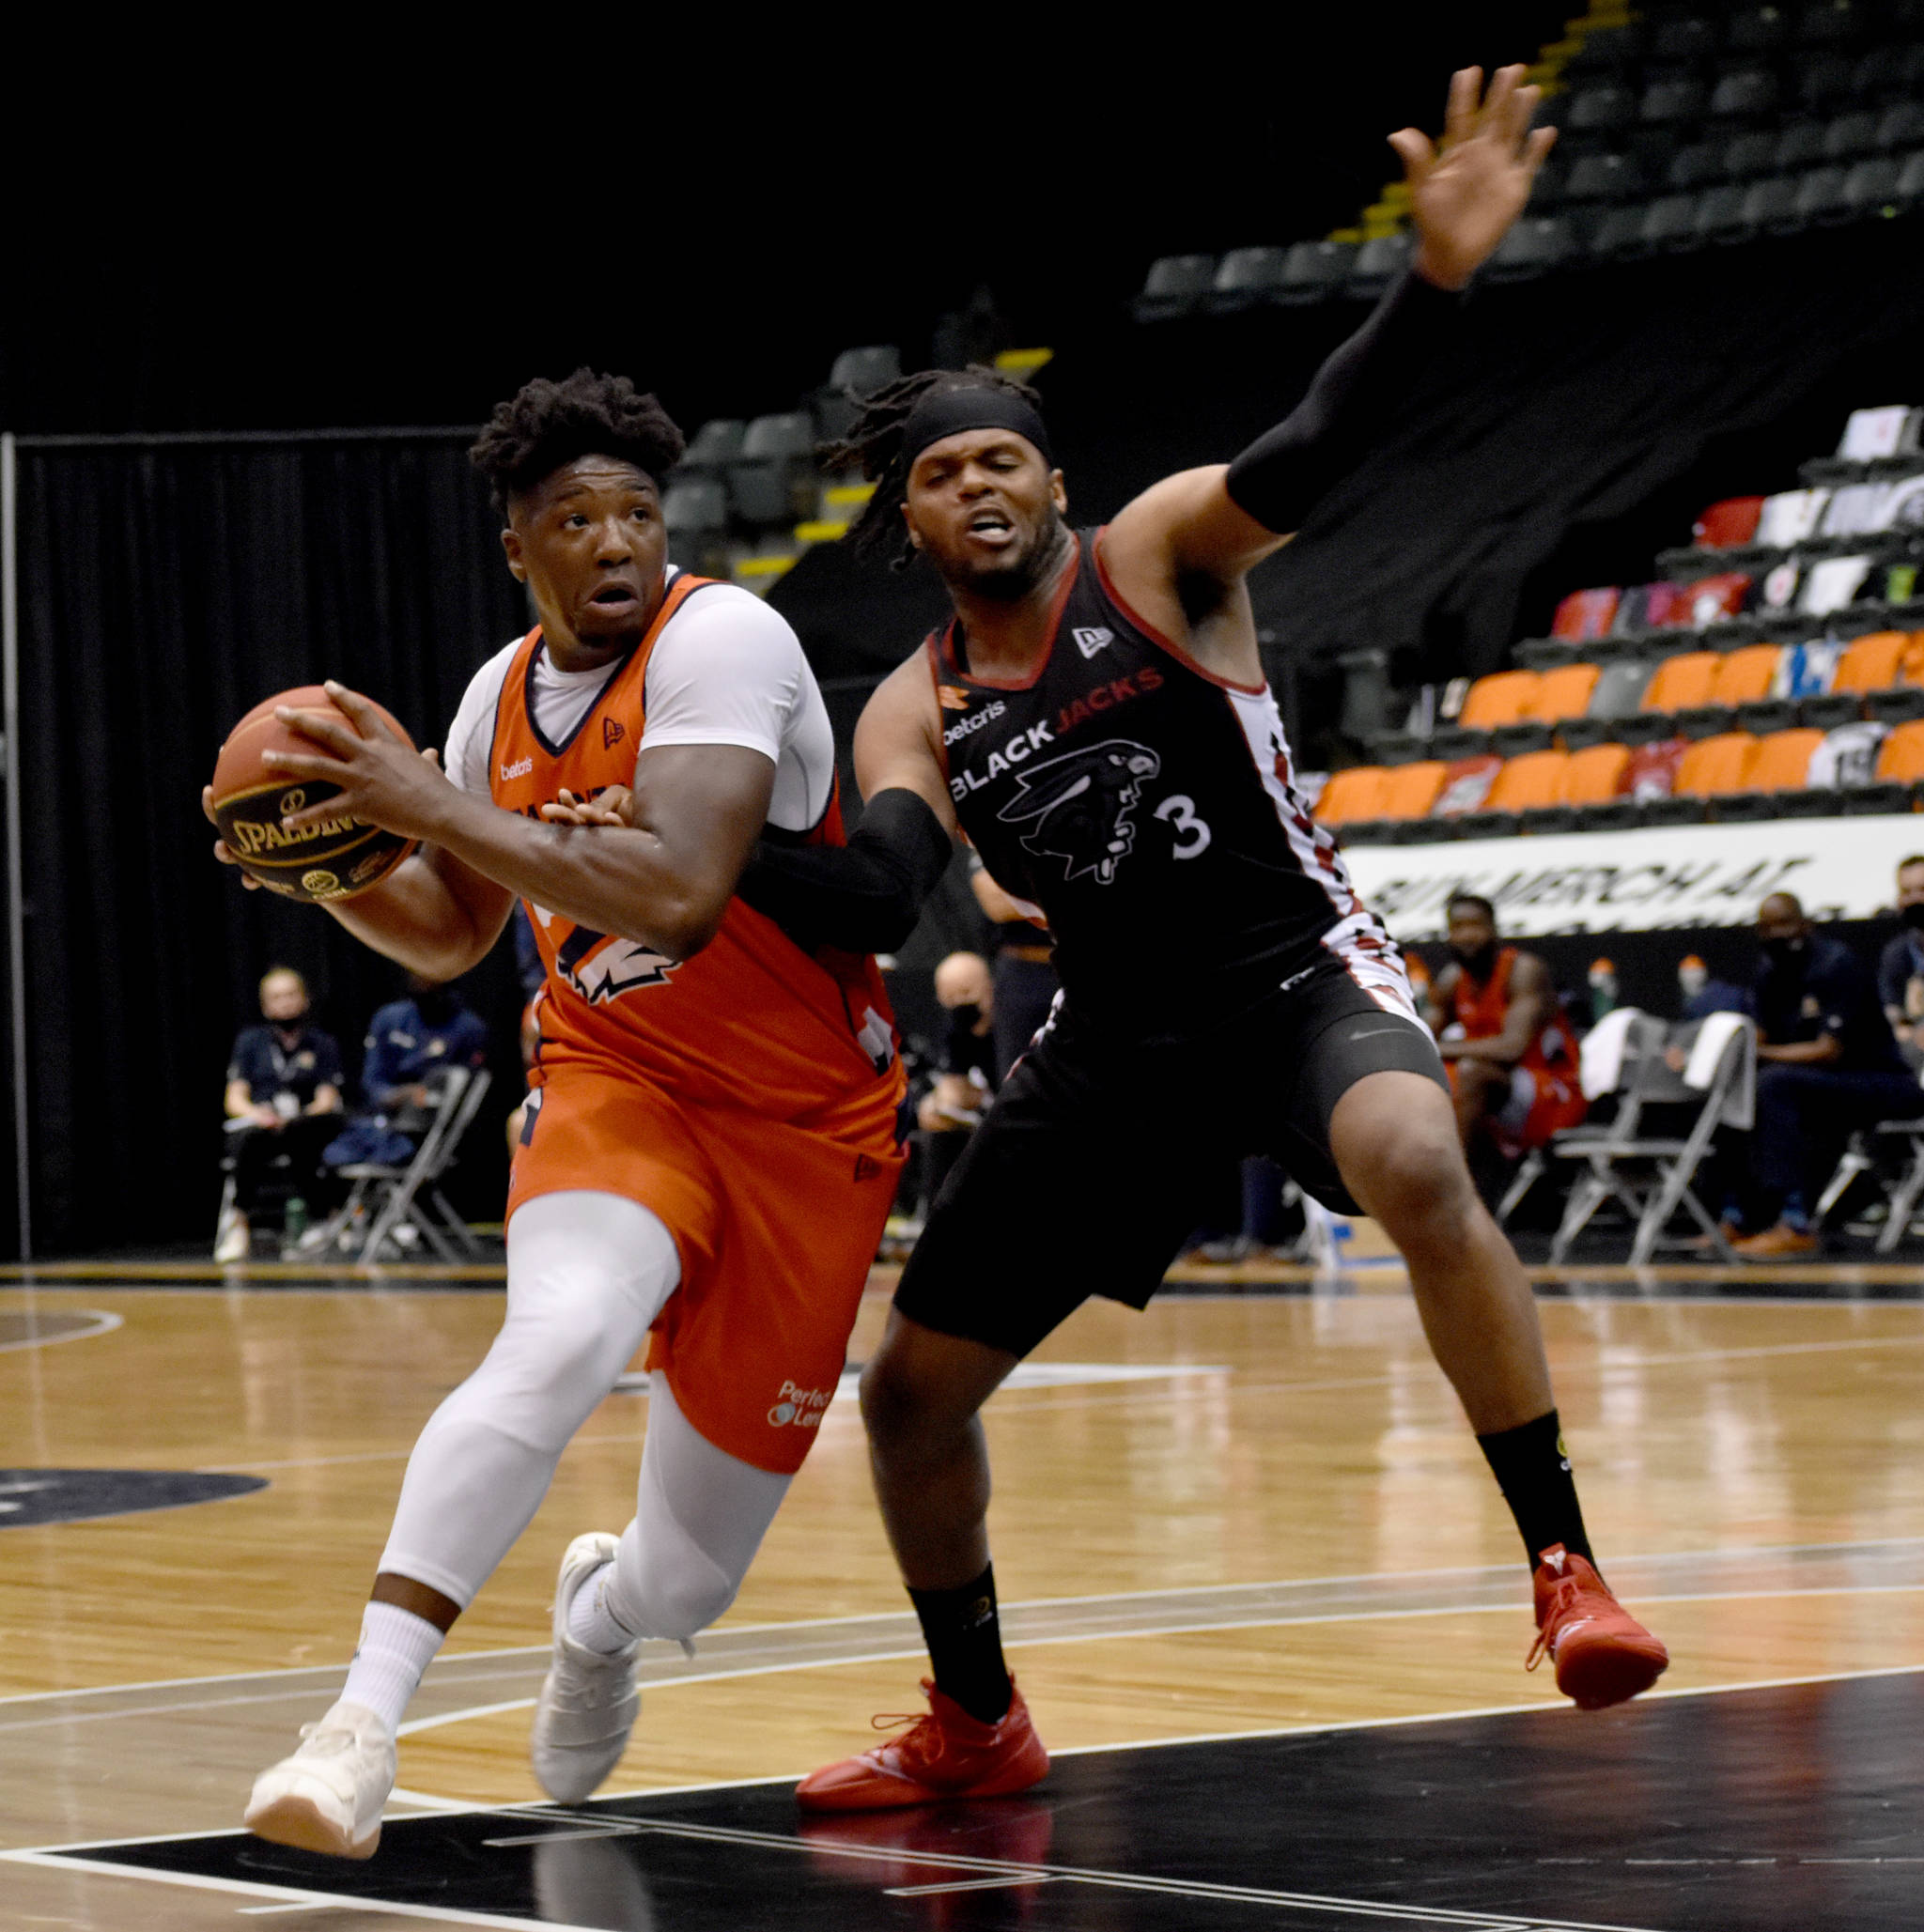 Bandits forward Shaquille Keith drives the lane. (Ben Lypka/Abbotsford News)